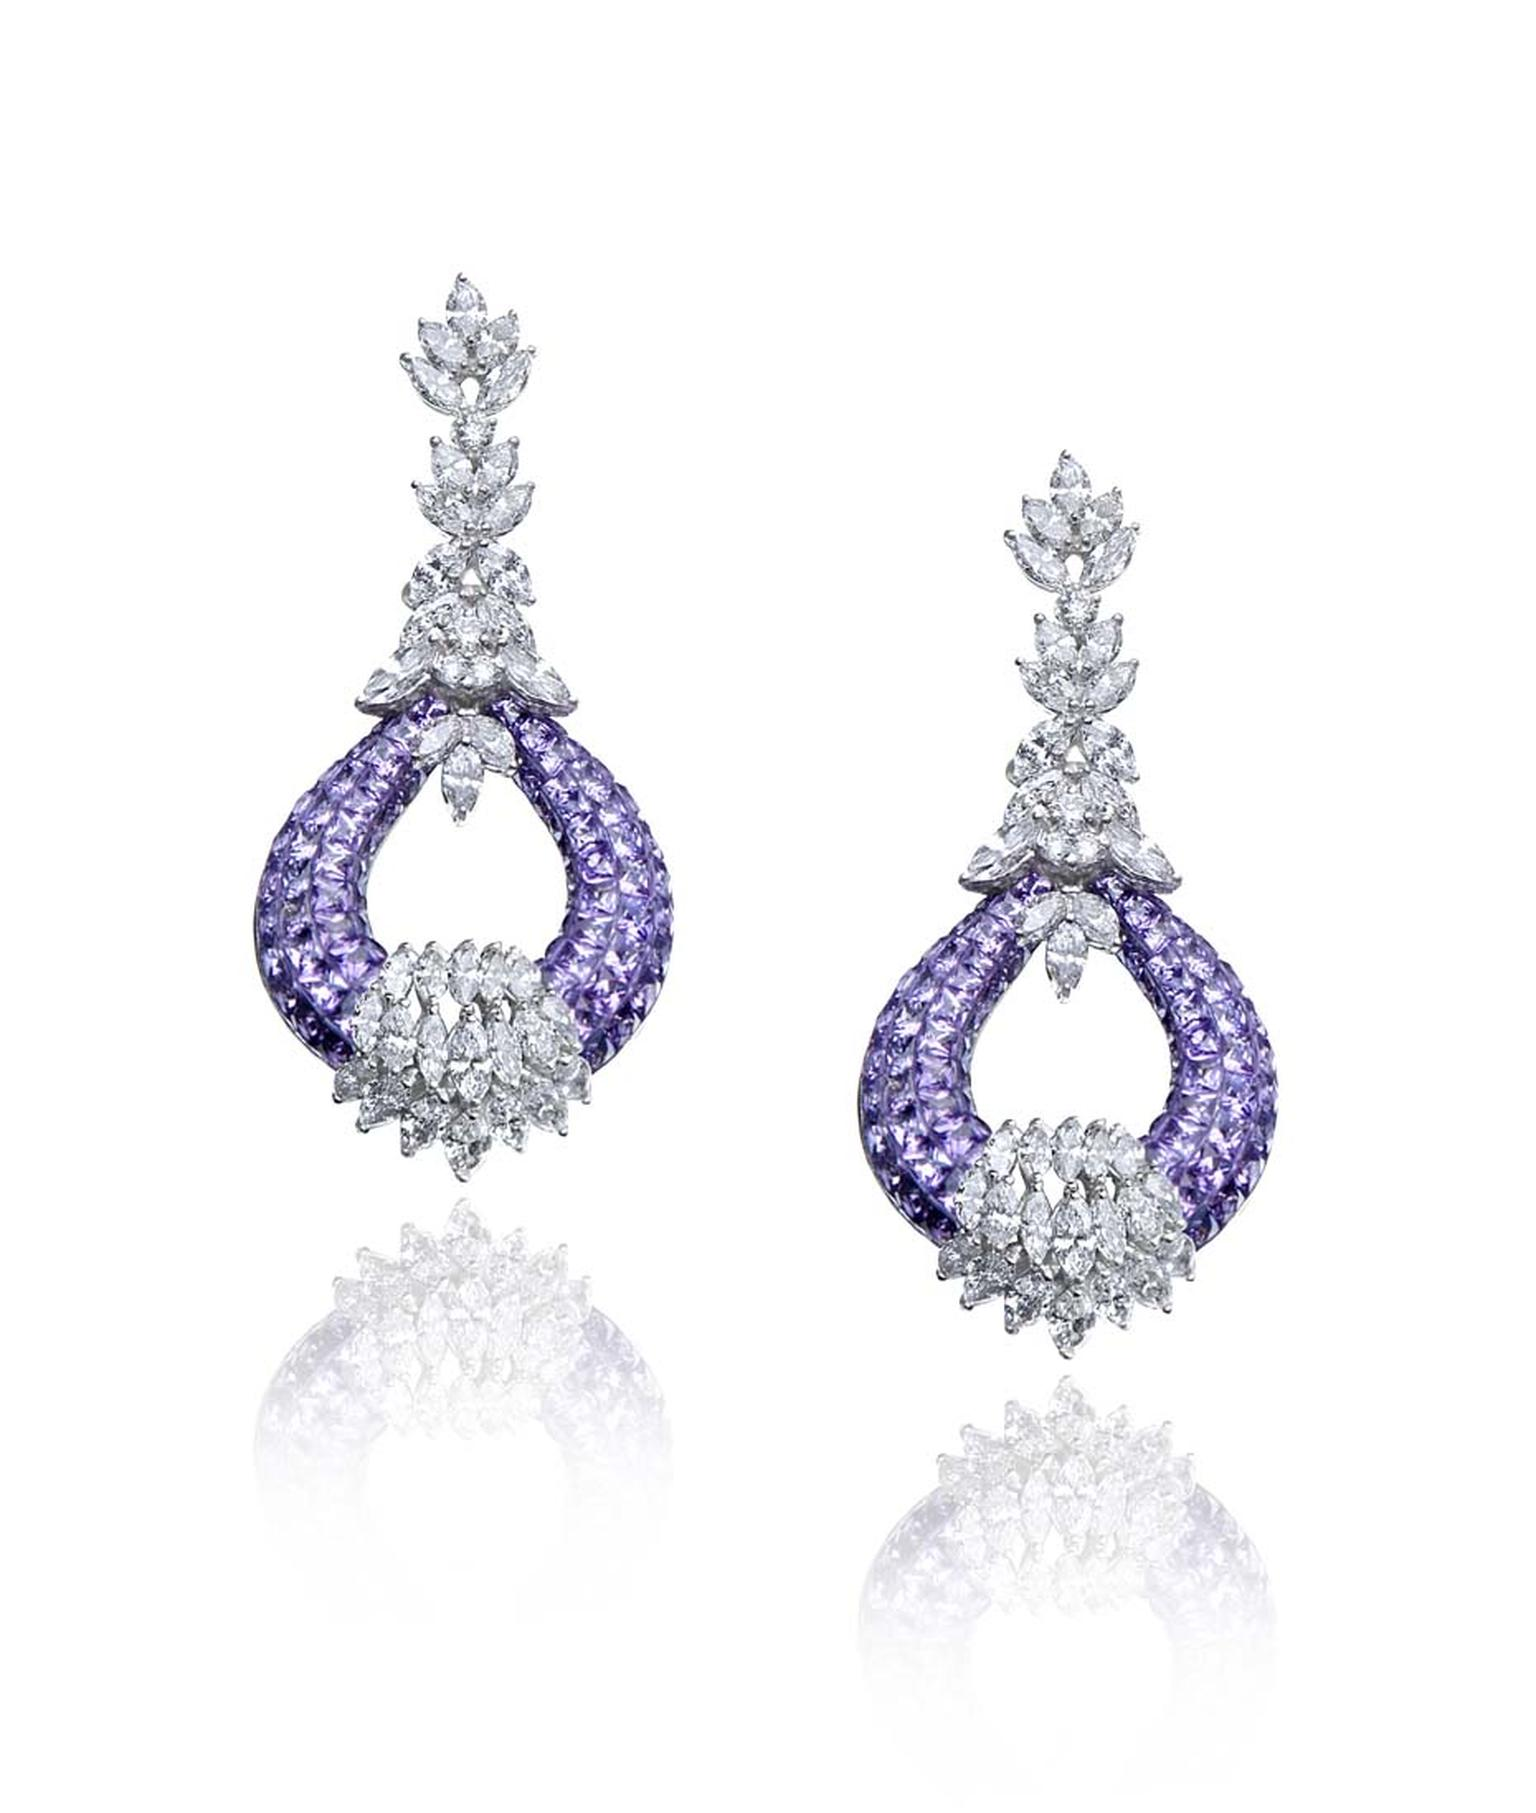 Farah Khan amethyst and diamond chandelier earrings.